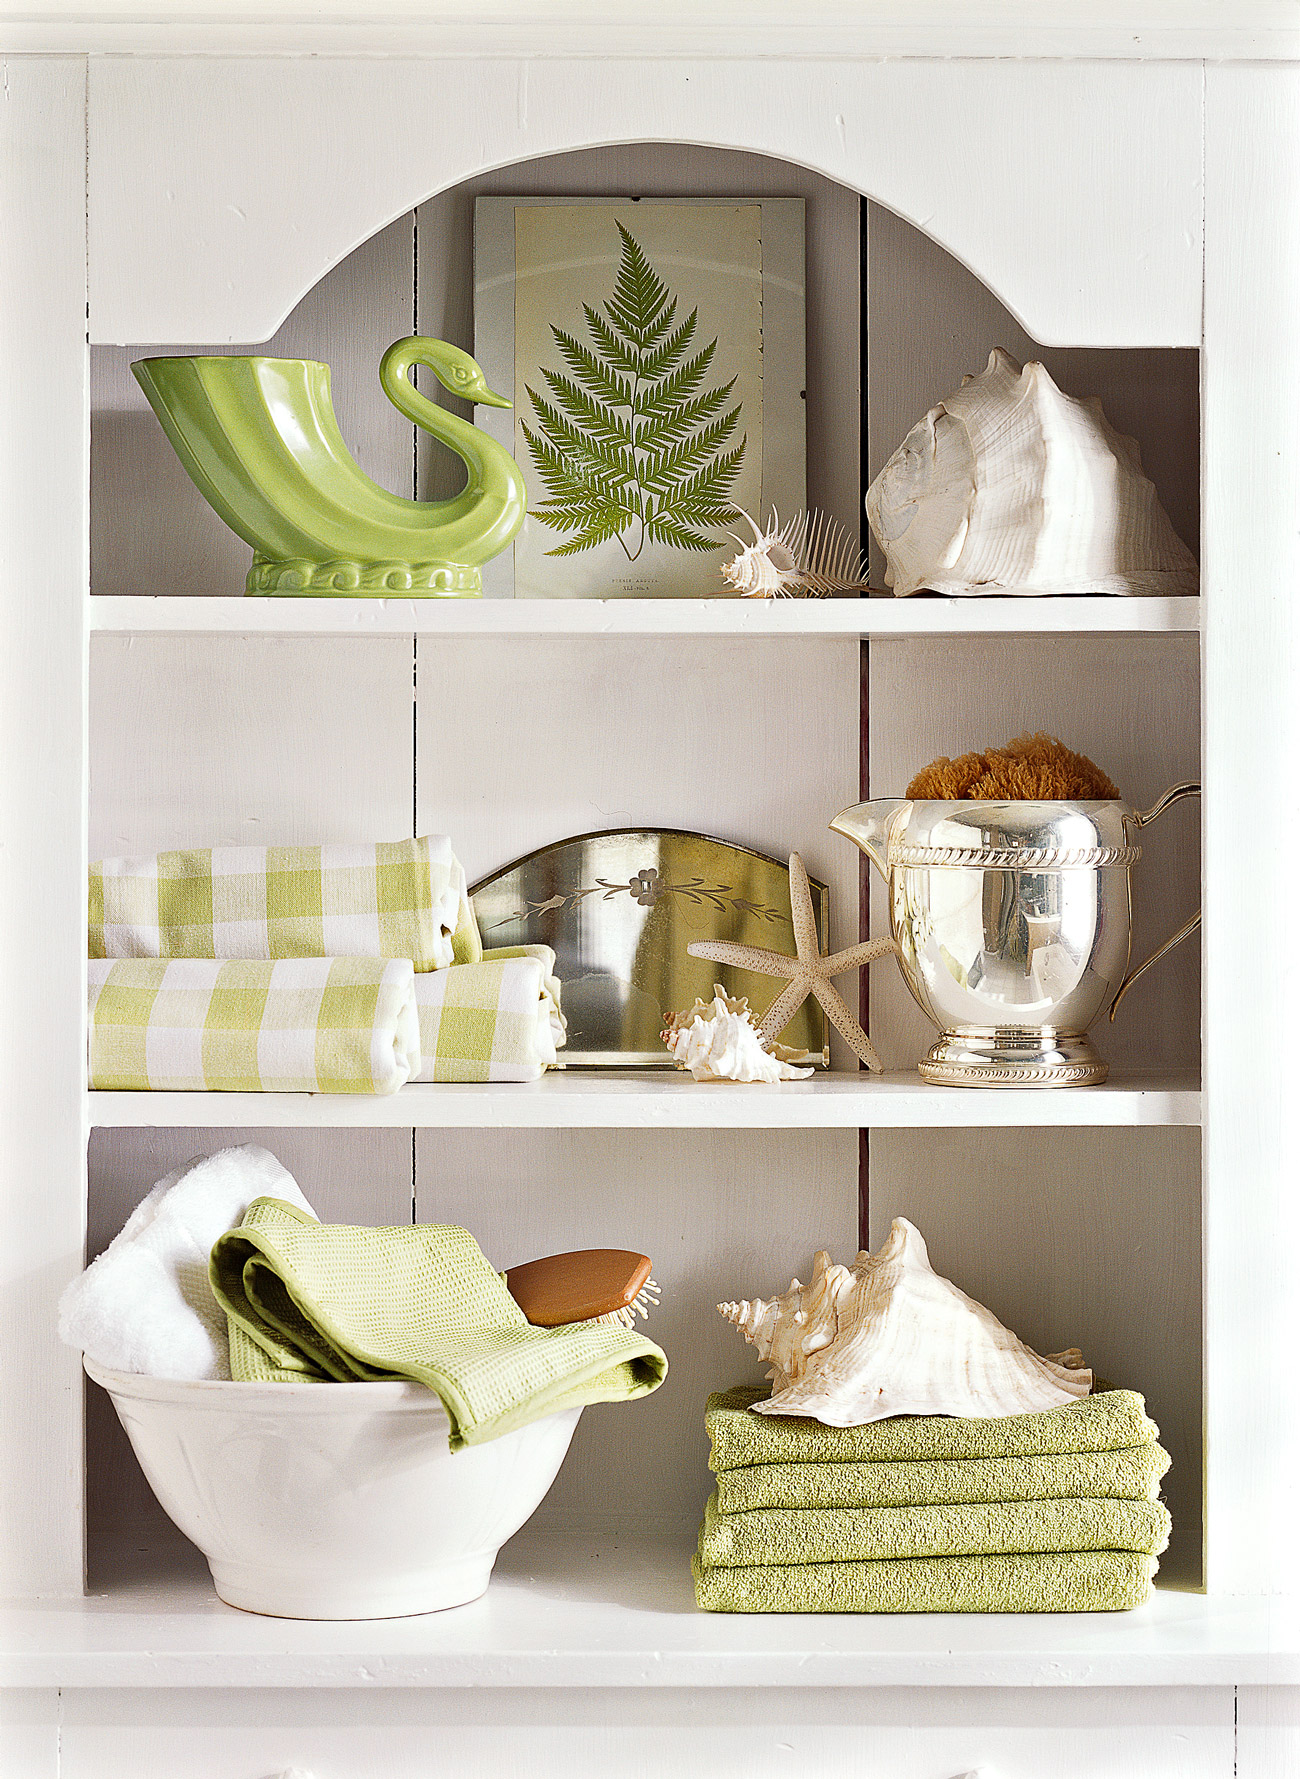 white hutch in bathroom with towels and other items